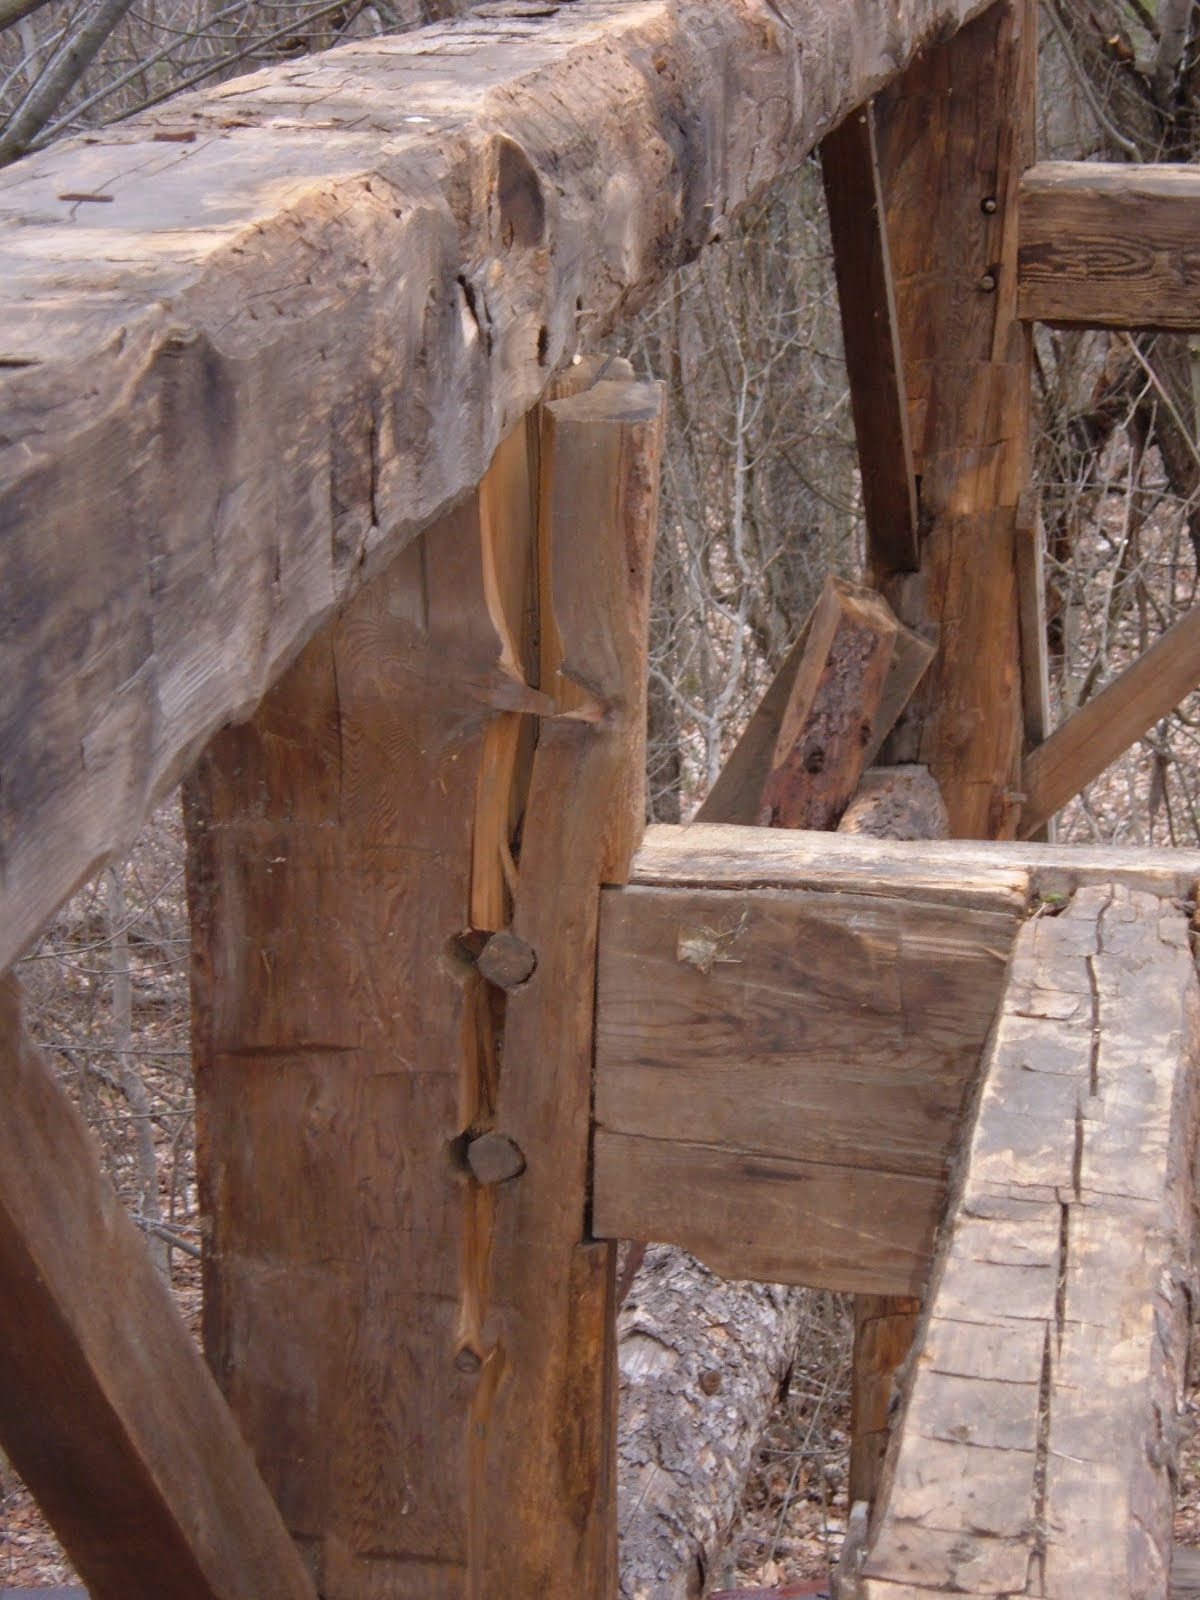 Outward thrust of the rafters on the plates split the tops of four of the posts at the tie beam.